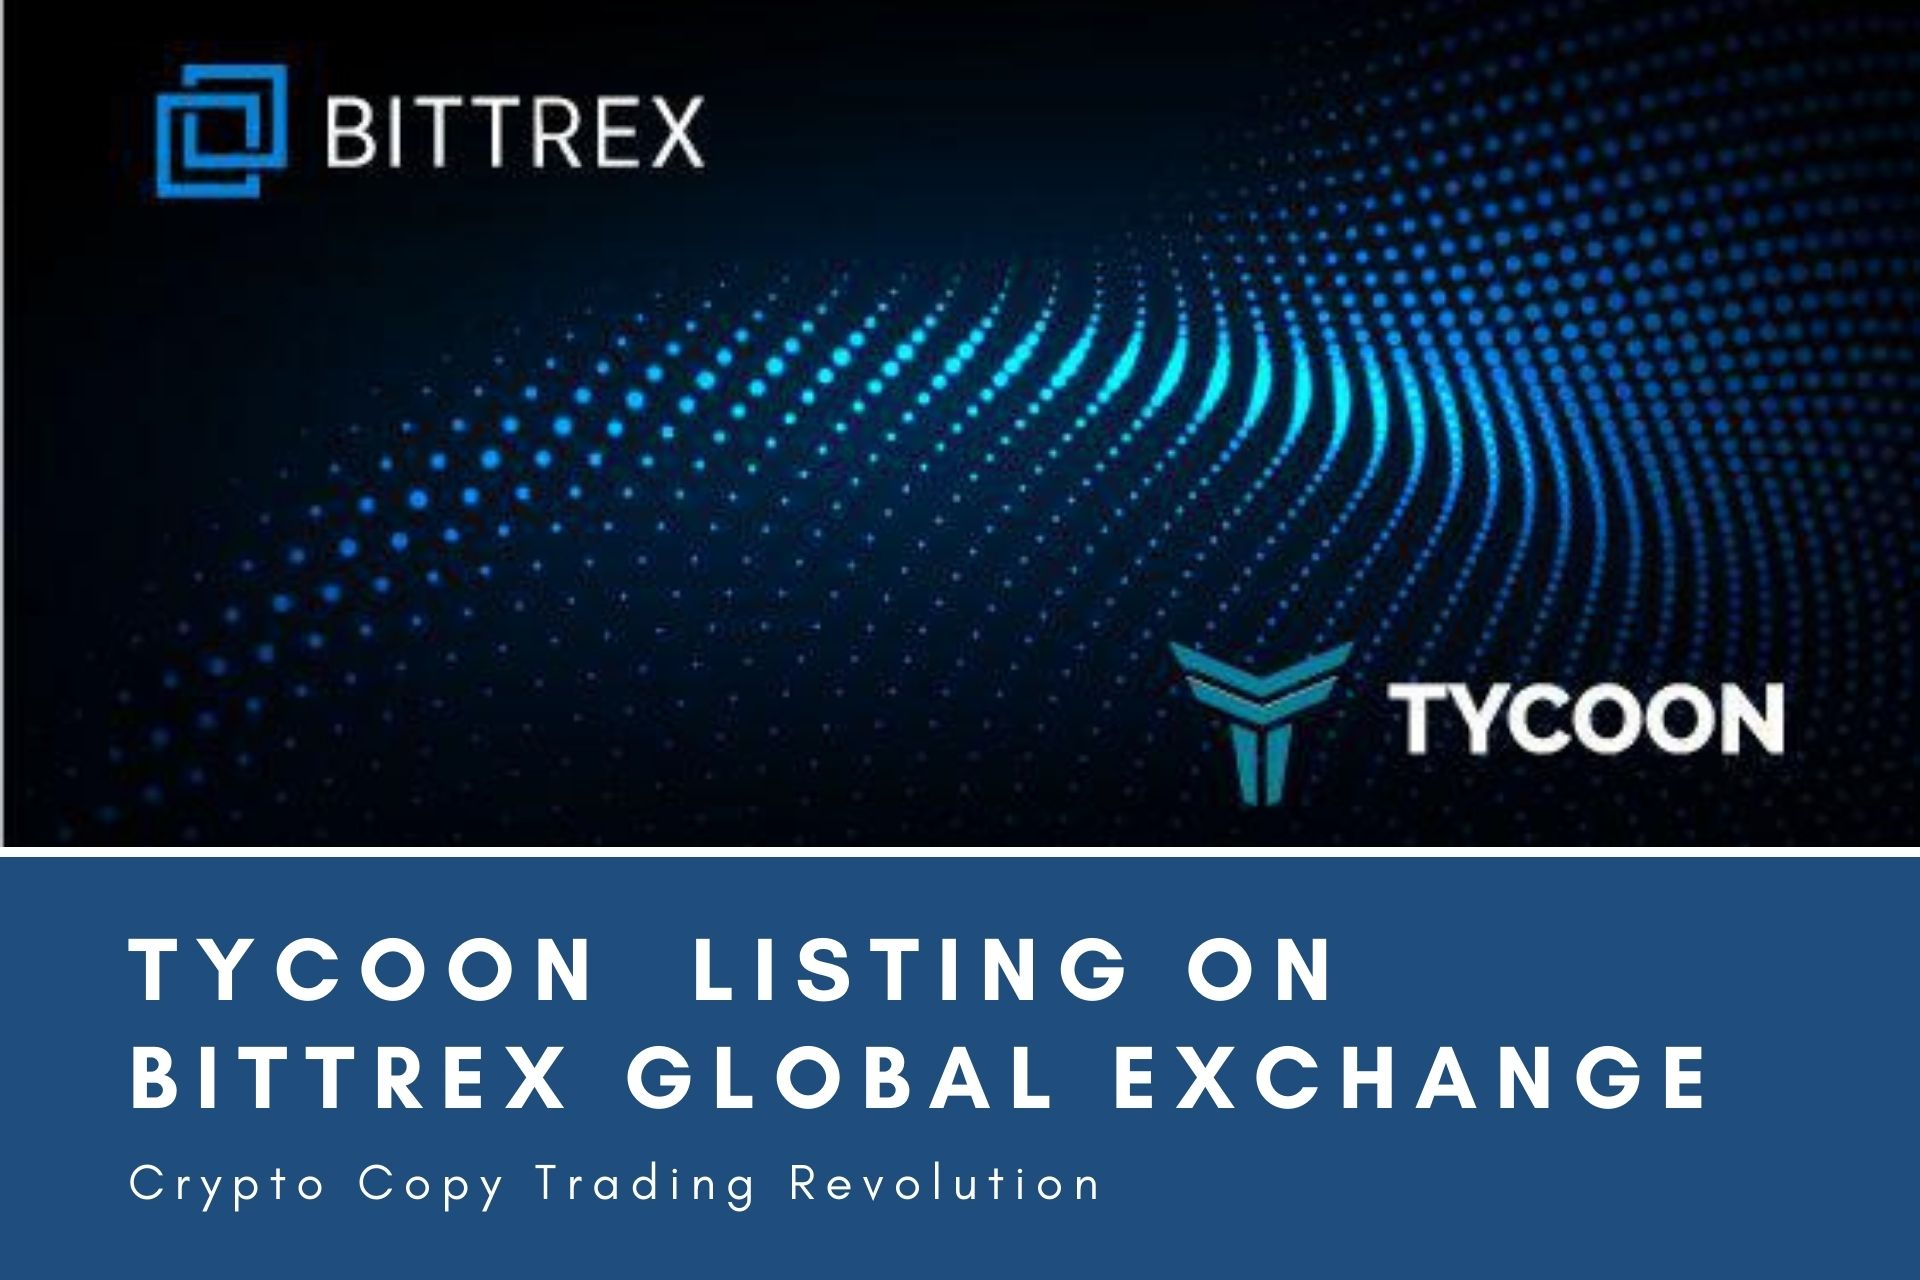 Tycoon, the Crypto Copy Trading Revolution. Now Listing on Bittrex Global exchange